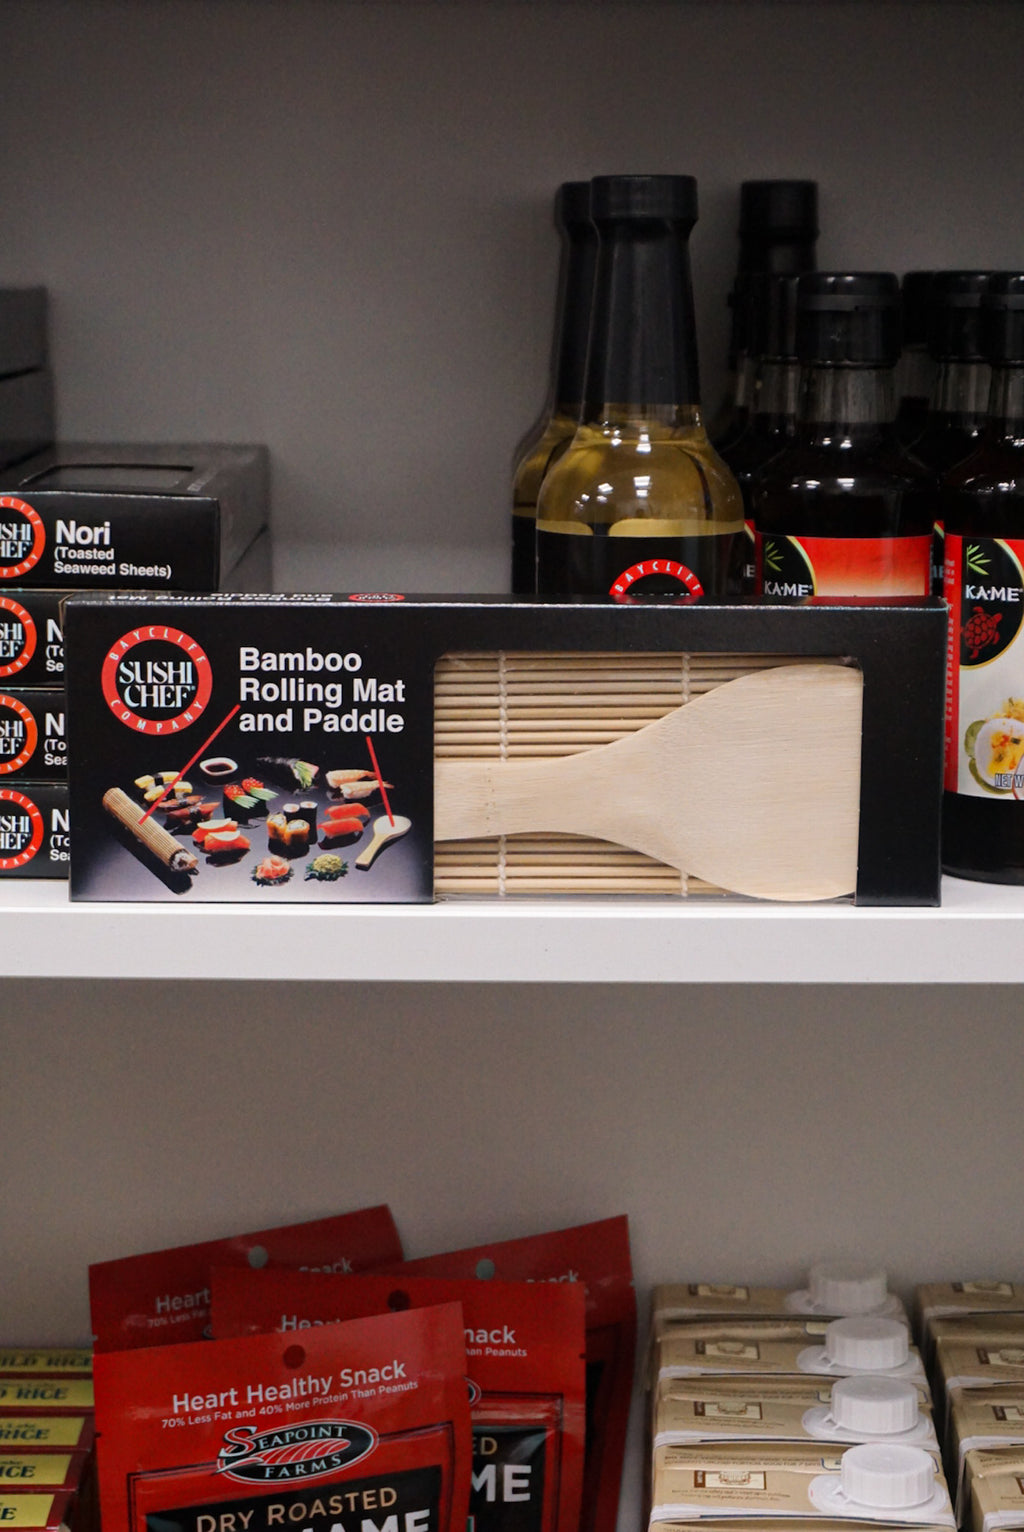 Sushi Chef Bamboo Rolling Mat & Paddle - New Canaan